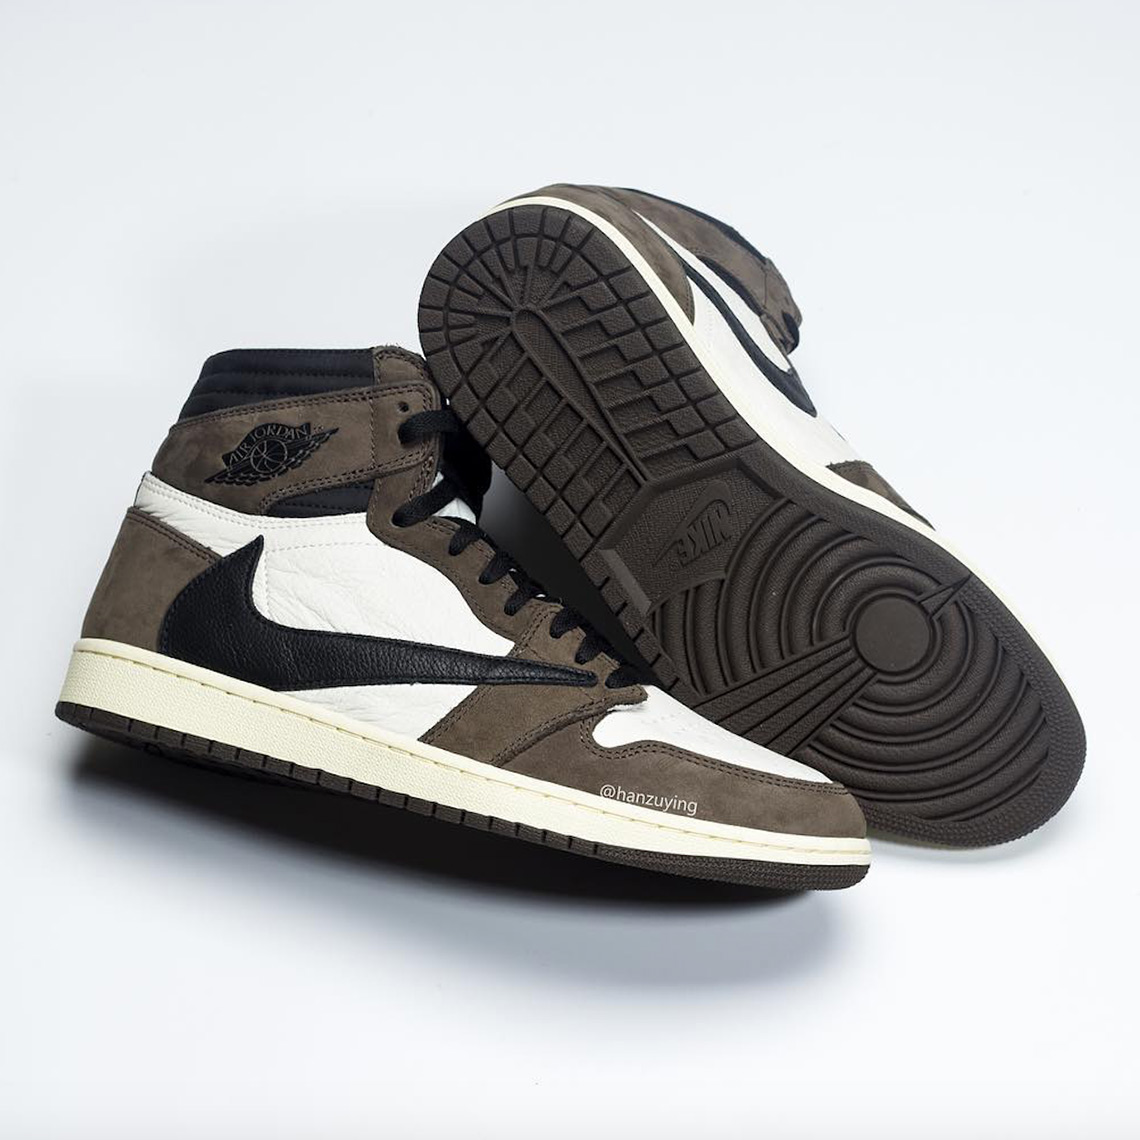 70eb6740ba7 How to Cop the Travis Scott x Air Jordan 1 | Nice Kicks